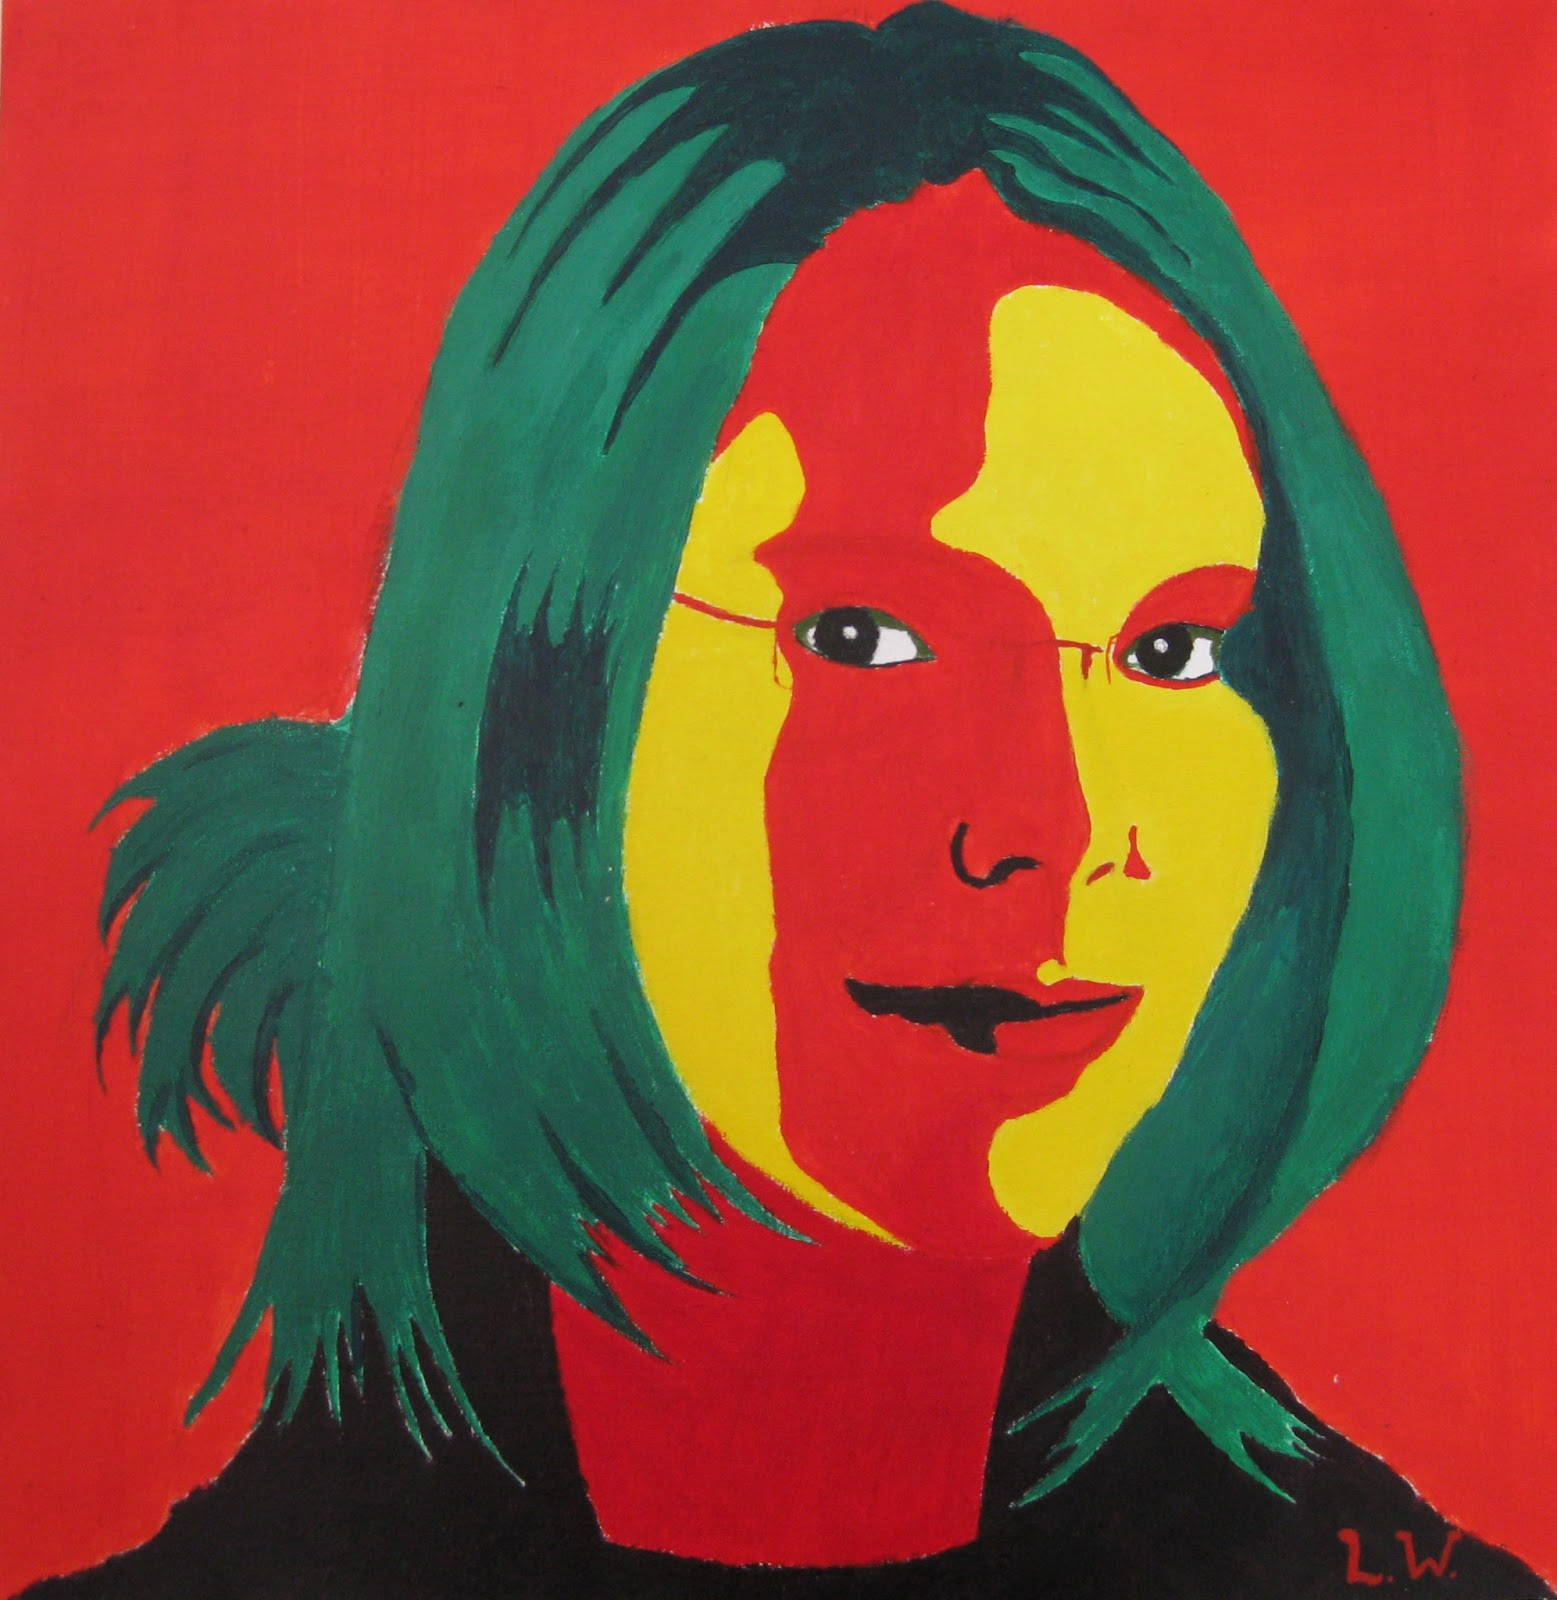 andy warhol images - HD 1557×1600